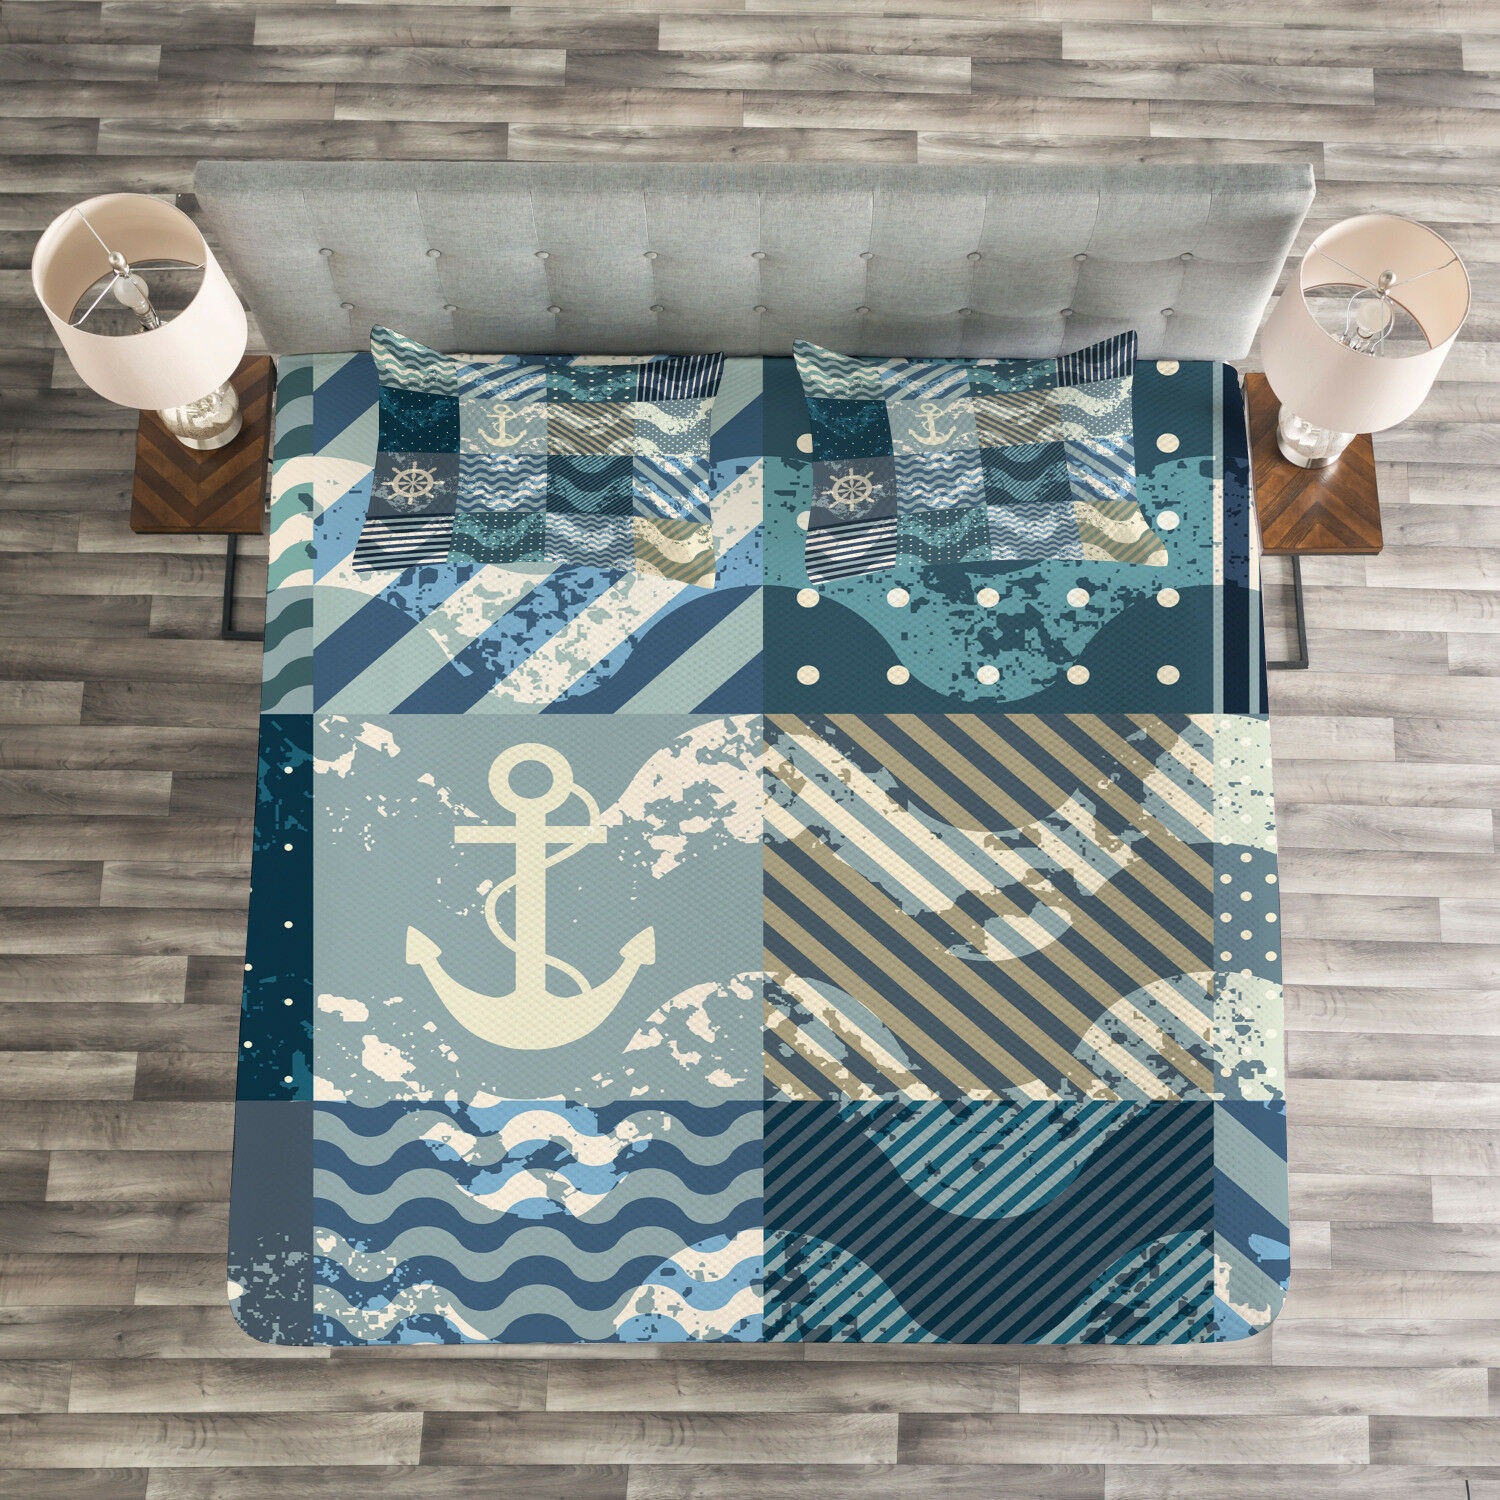 Nautical Quilted Bedspread & Pillow Shams Set, Anchor Grunge Naval Print